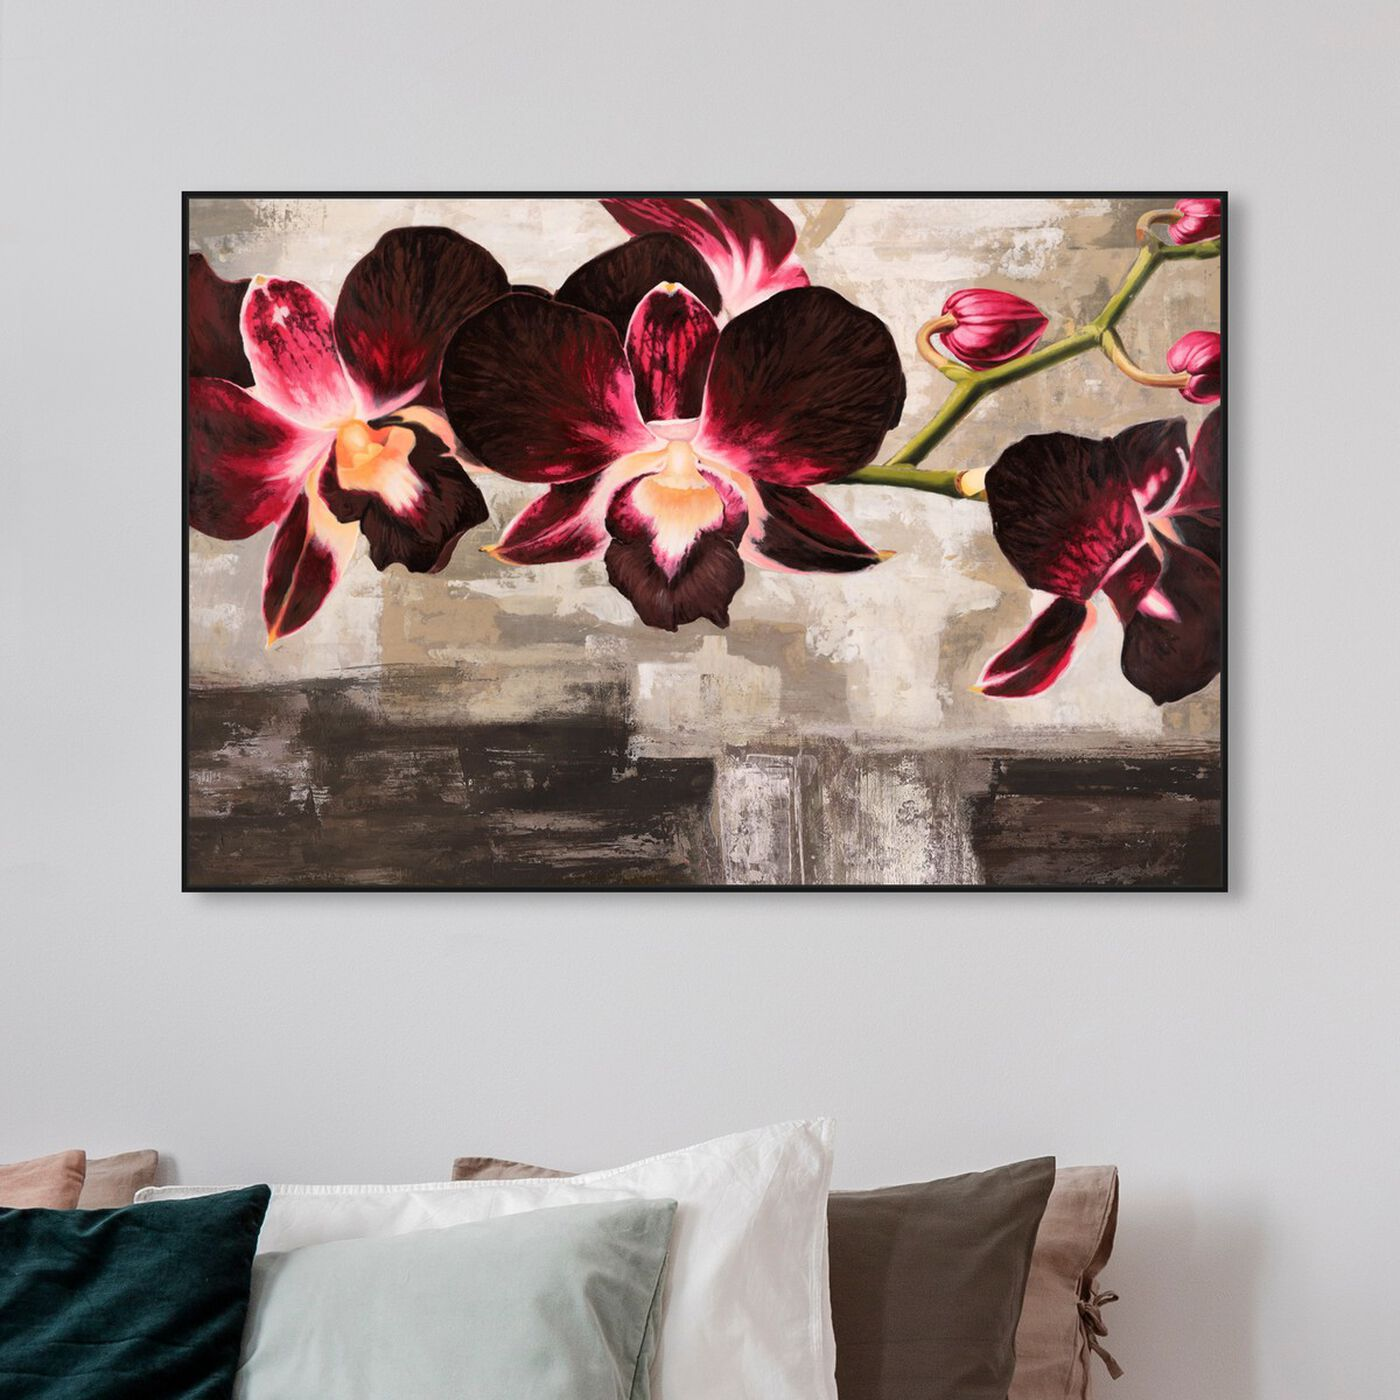 Hanging view of Sai - Rouge Floral 3MI1889 featuring floral and botanical and florals art.